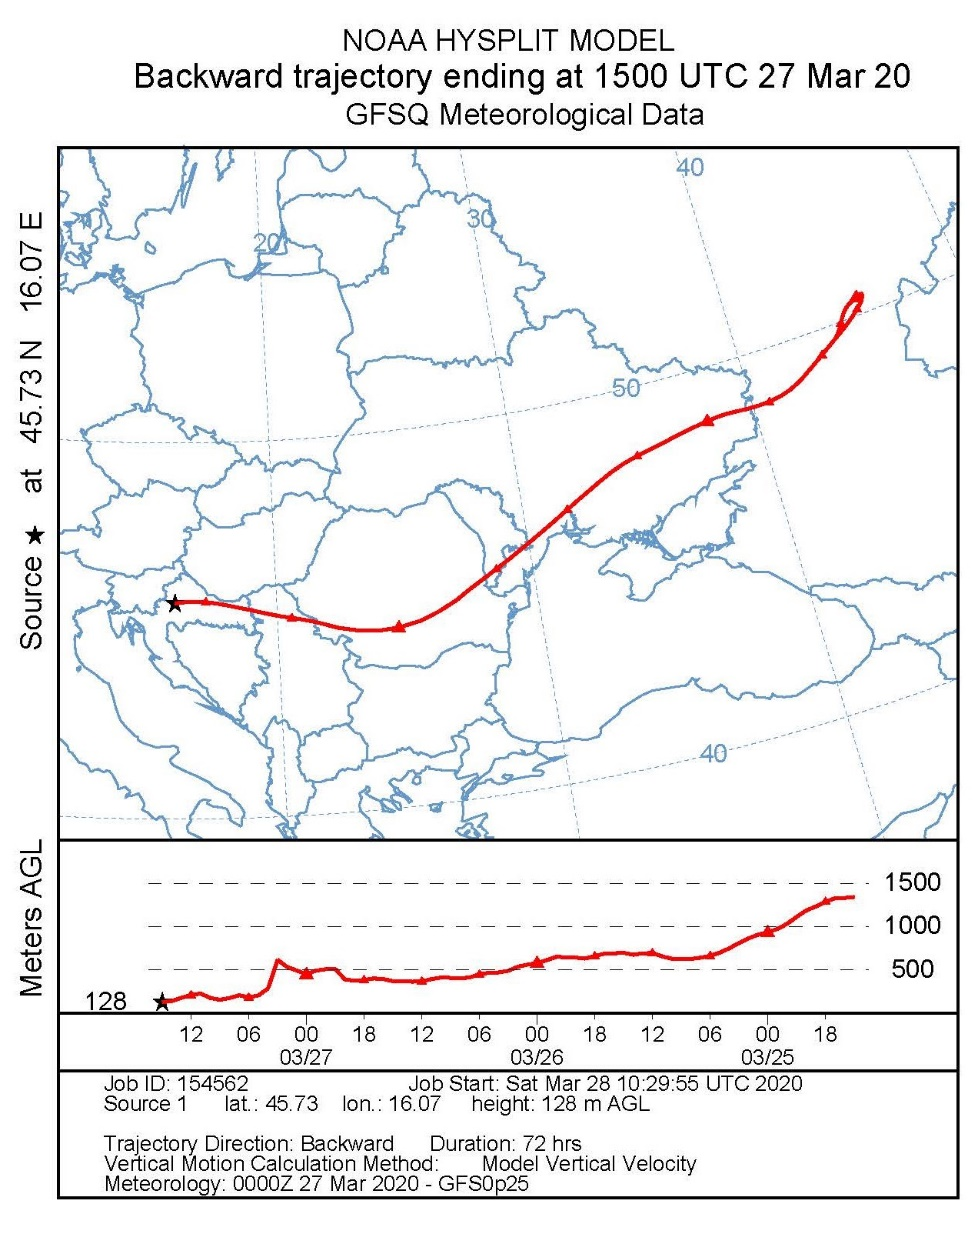 Three days backward trajectory arriving to sites in Zagreb, Croatia, 27 March 15:00 UTC, calculated by Hysplit model